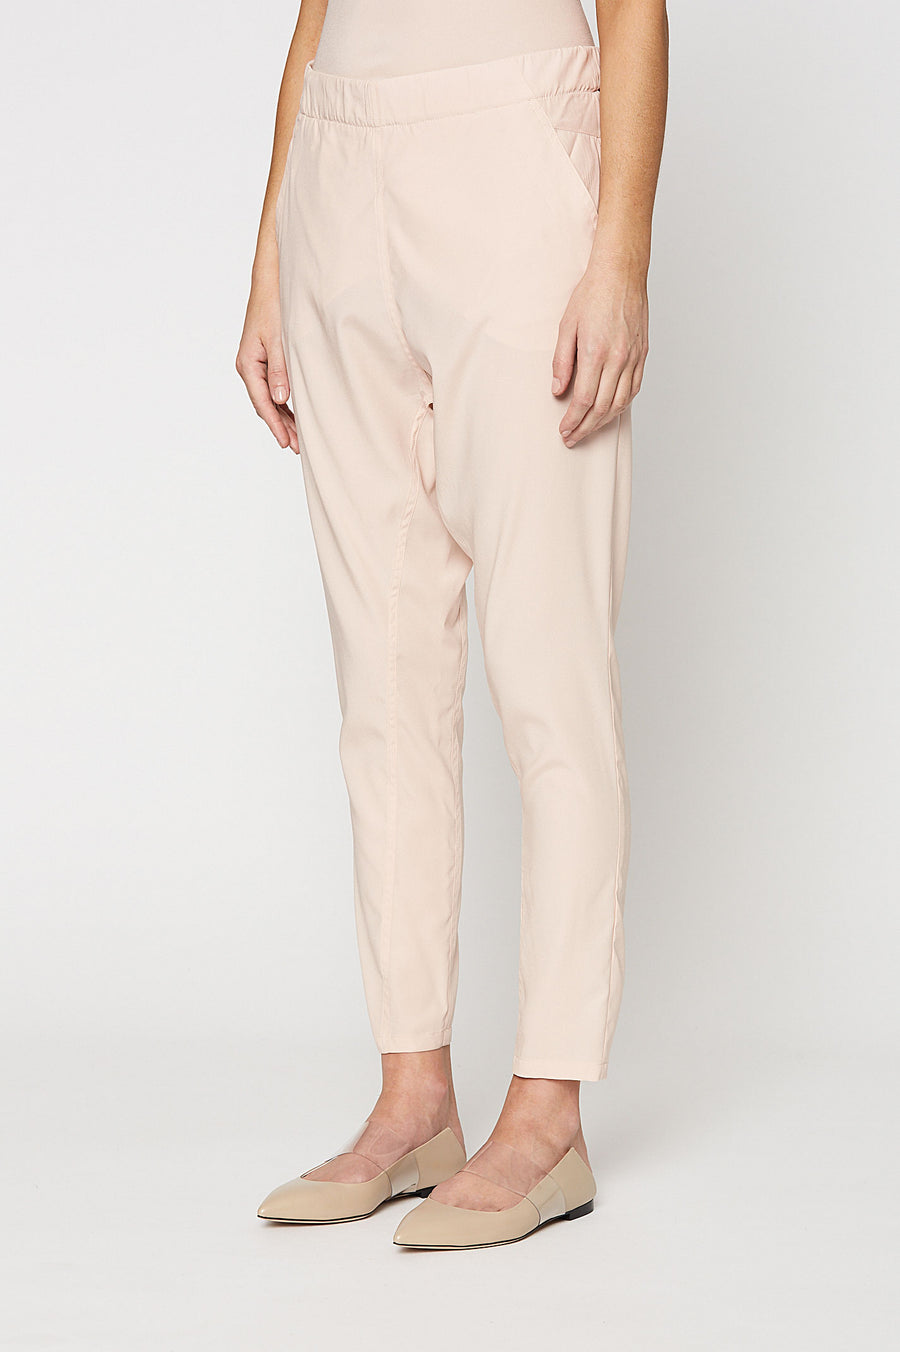 SILK LOW RISE BOYFRIEND PANT, PALE PINK color